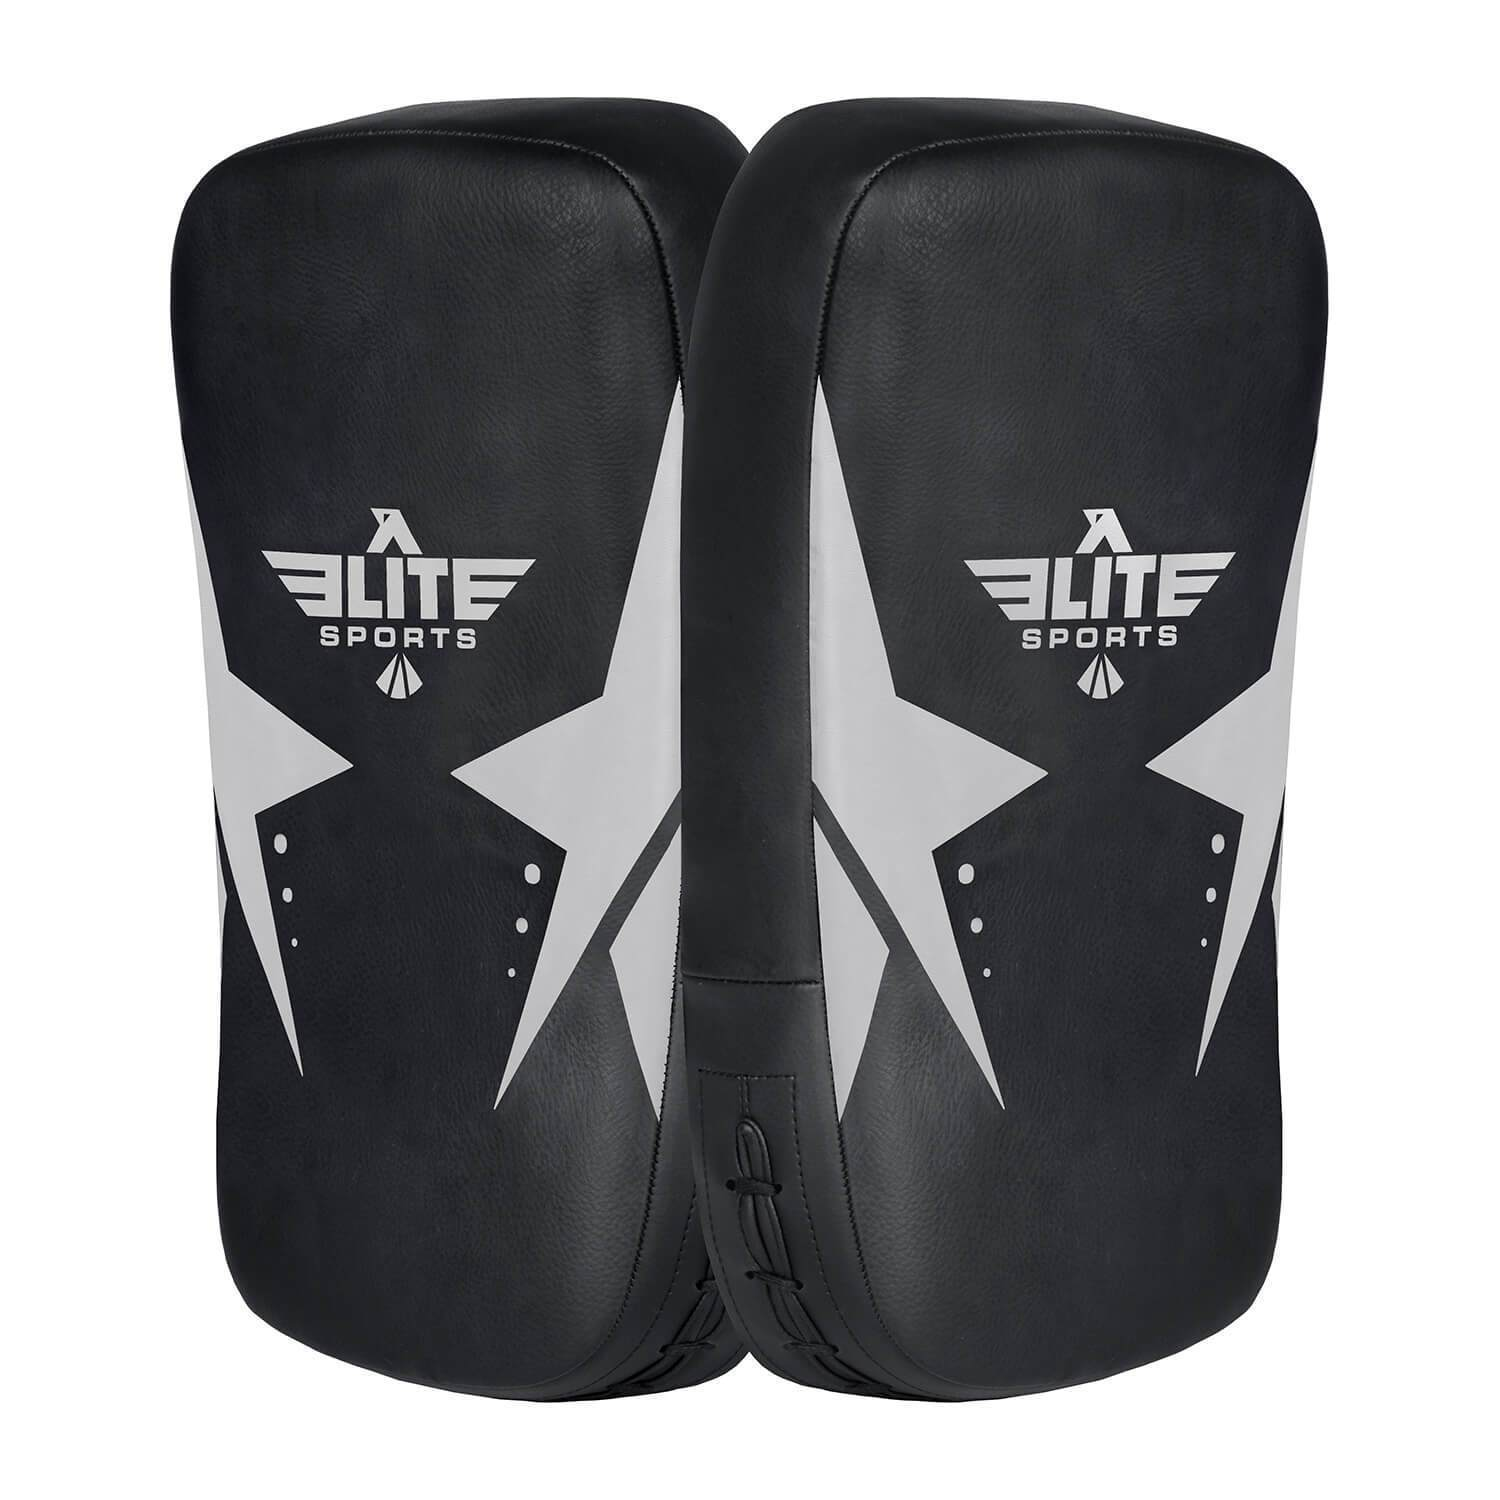 Elite Sports Black/Silver Muay thai Kick Pad